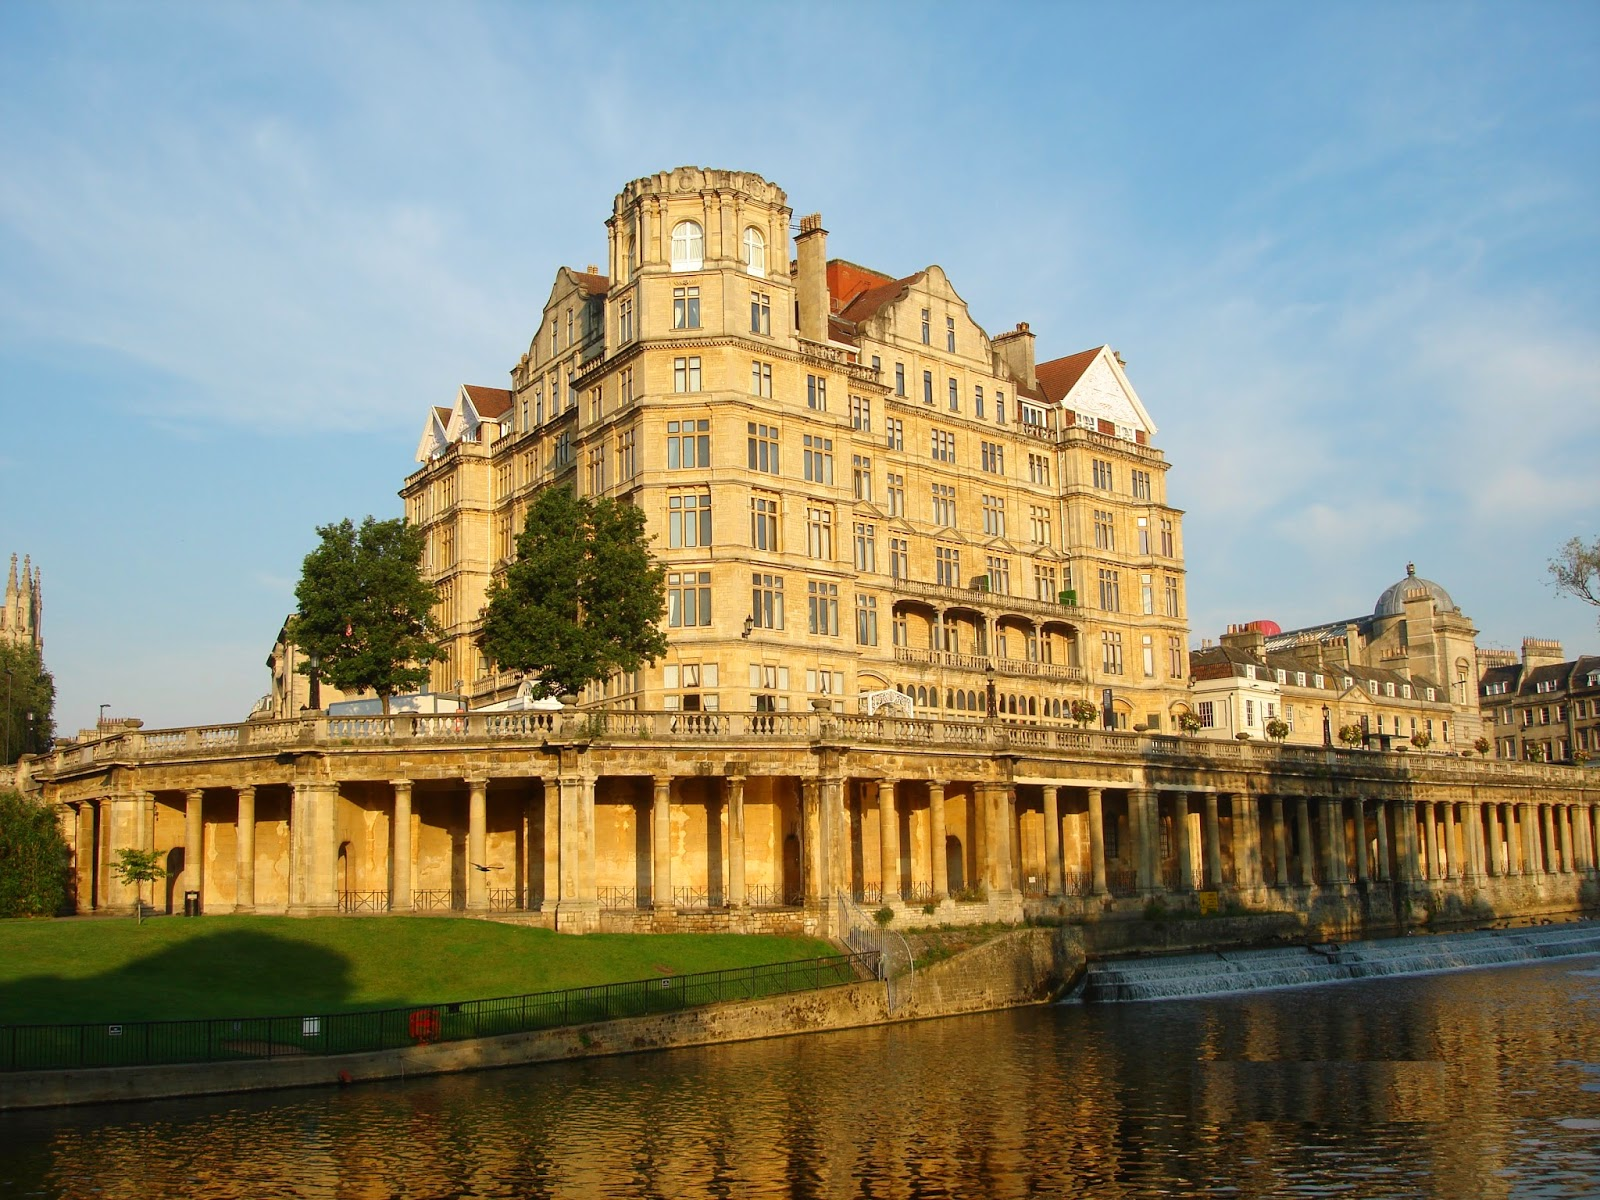 Empire Hotel, River Avon, Bath, England